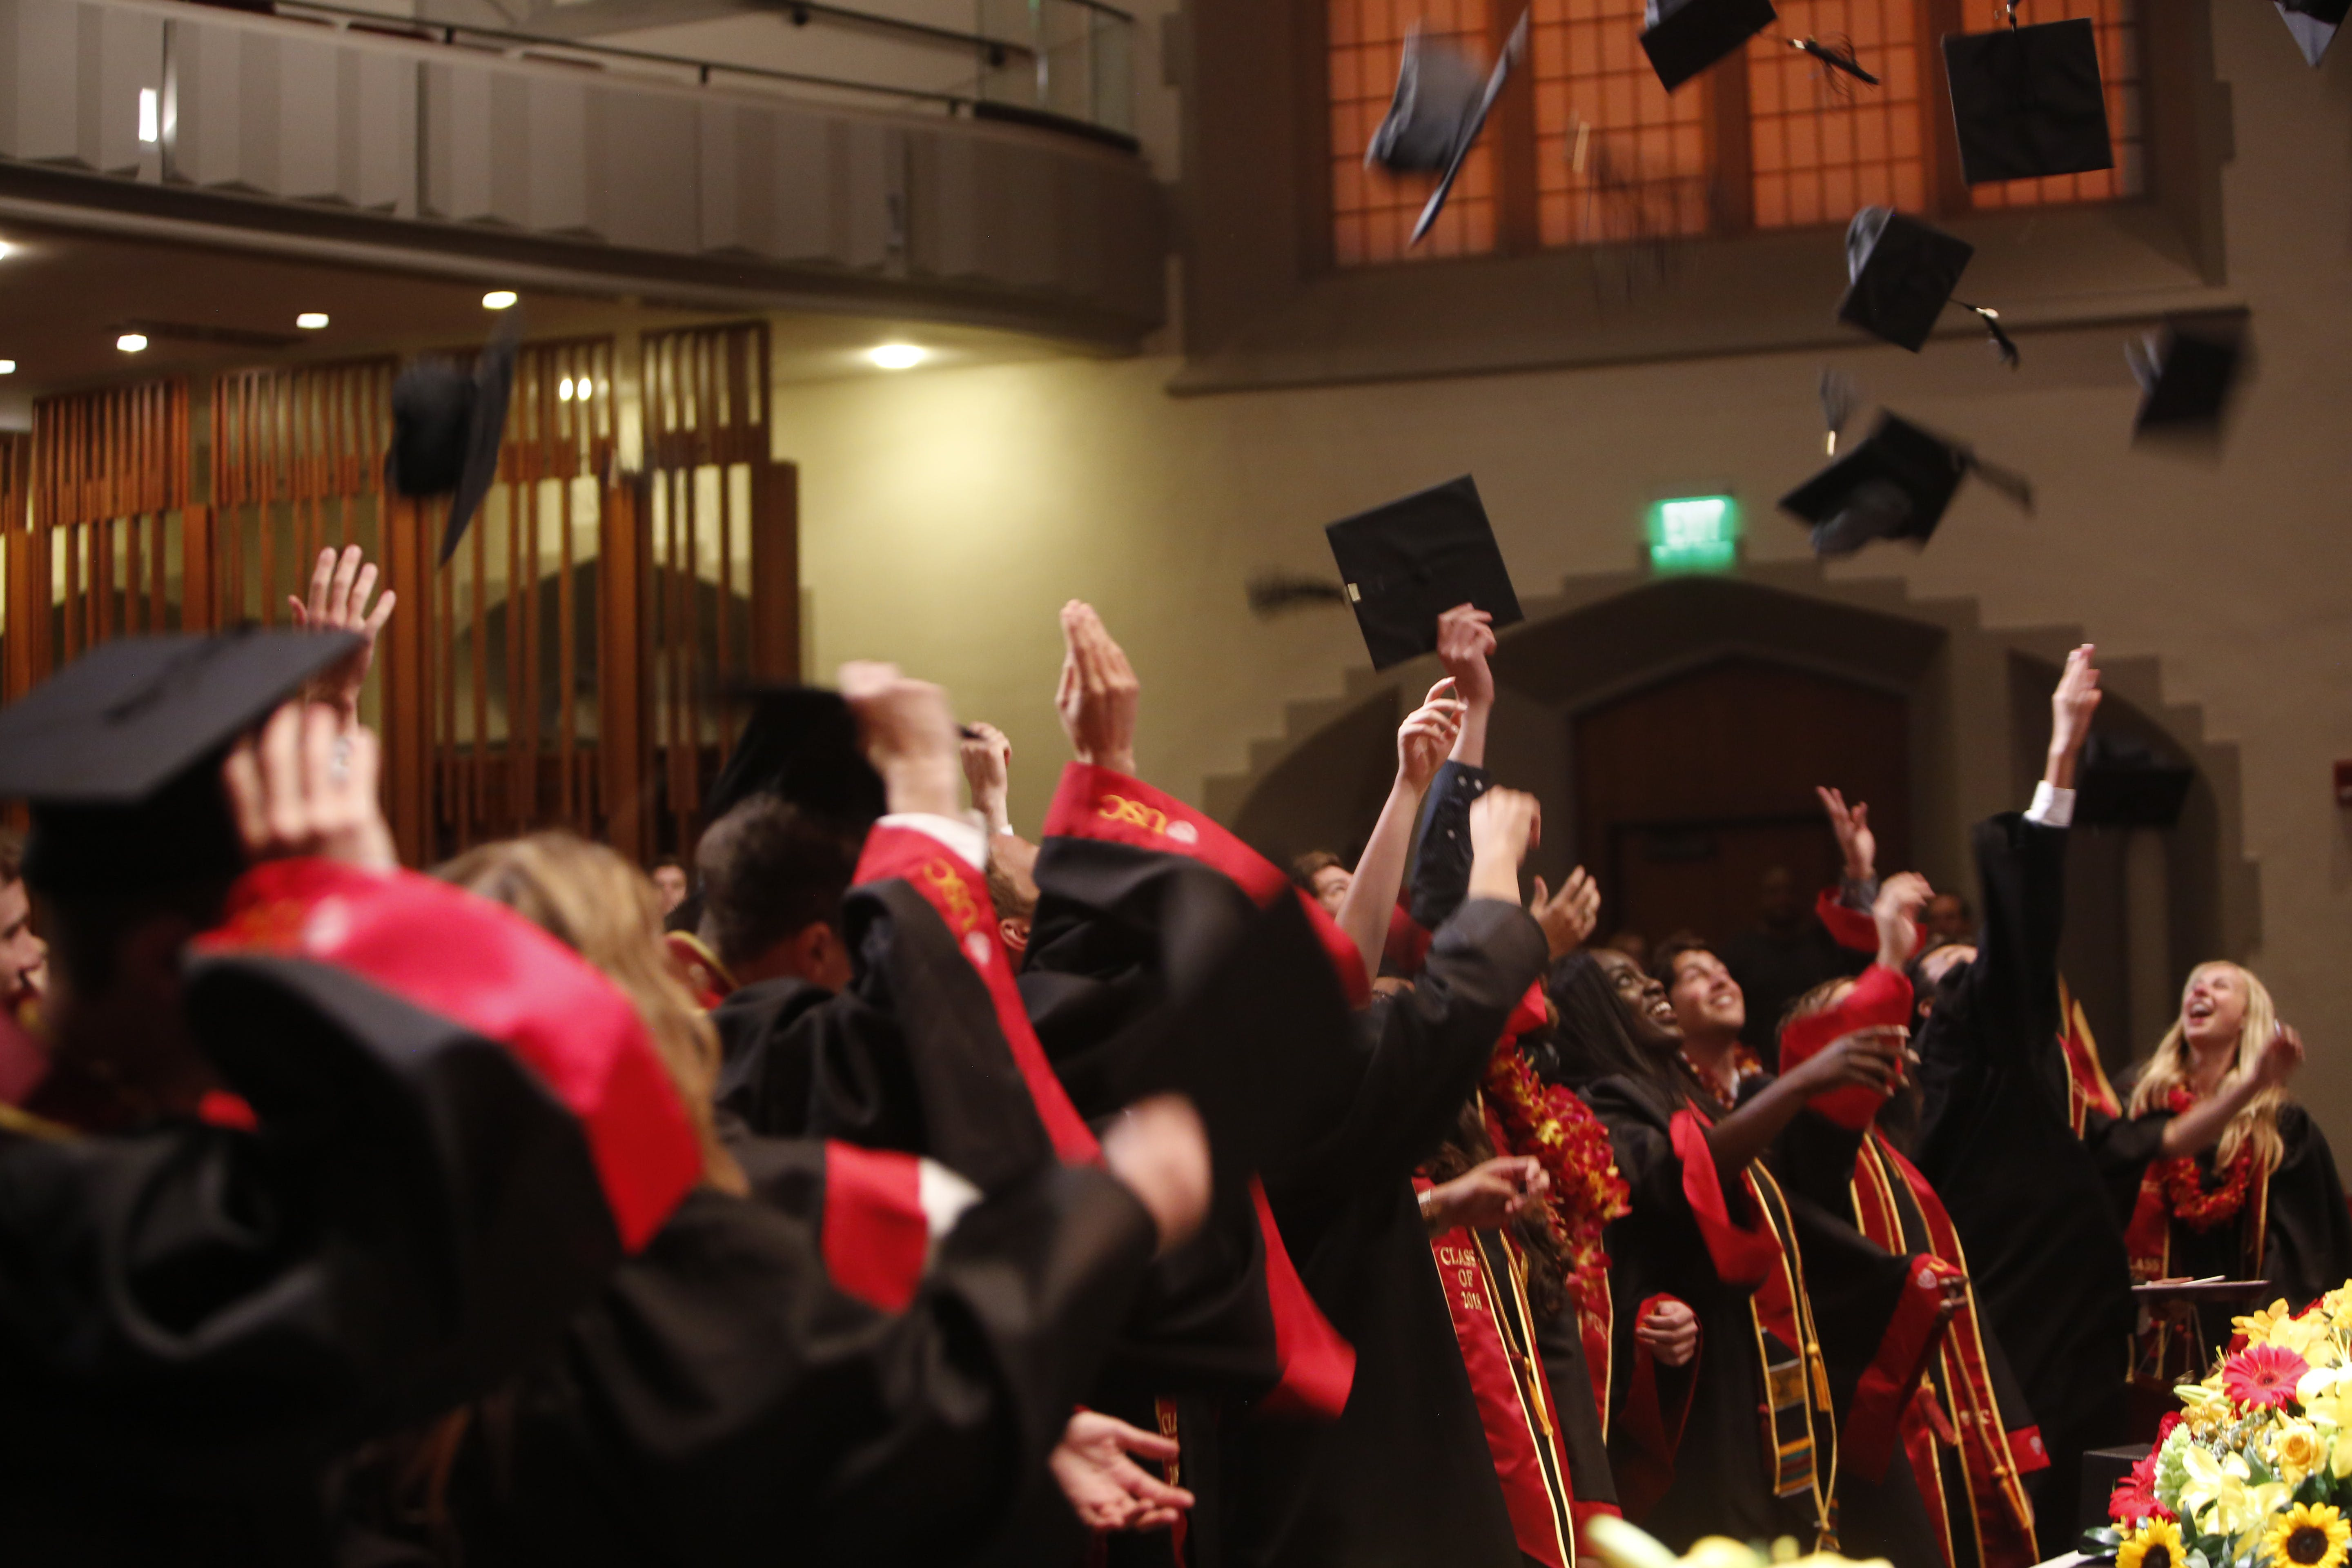 Graduating students wearing cap and gown throw caps into the air